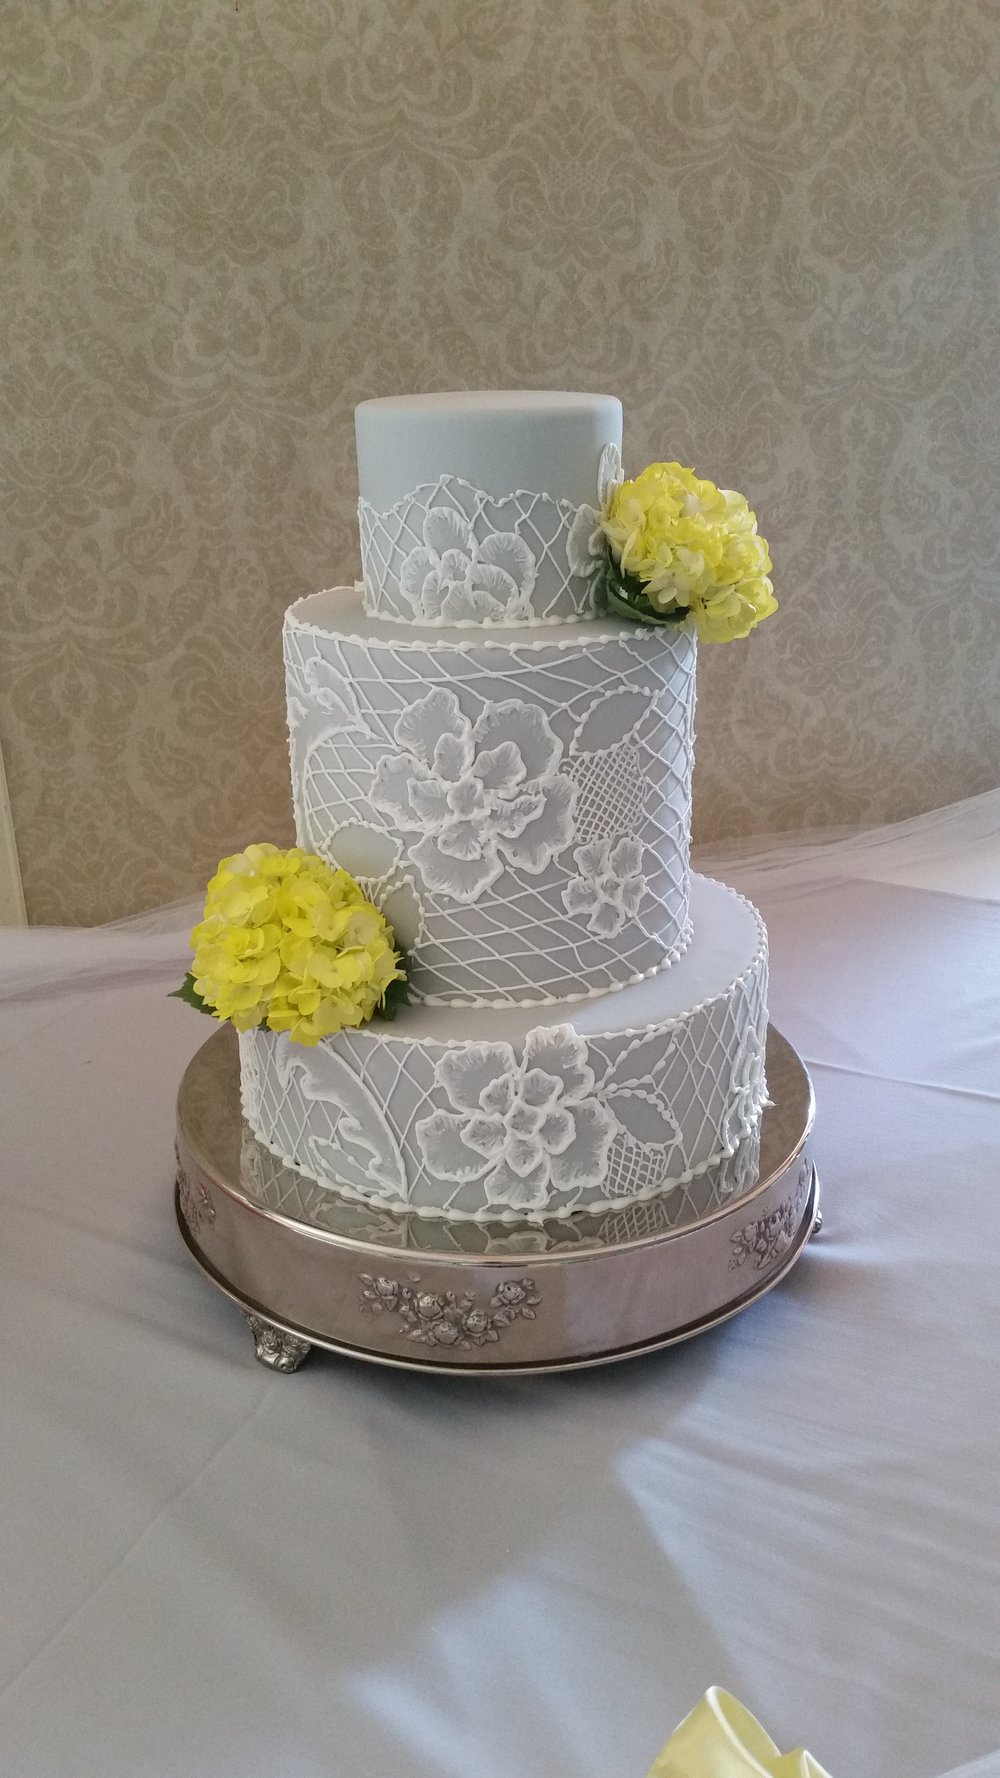 Grey Fondant with Brushed Flowers